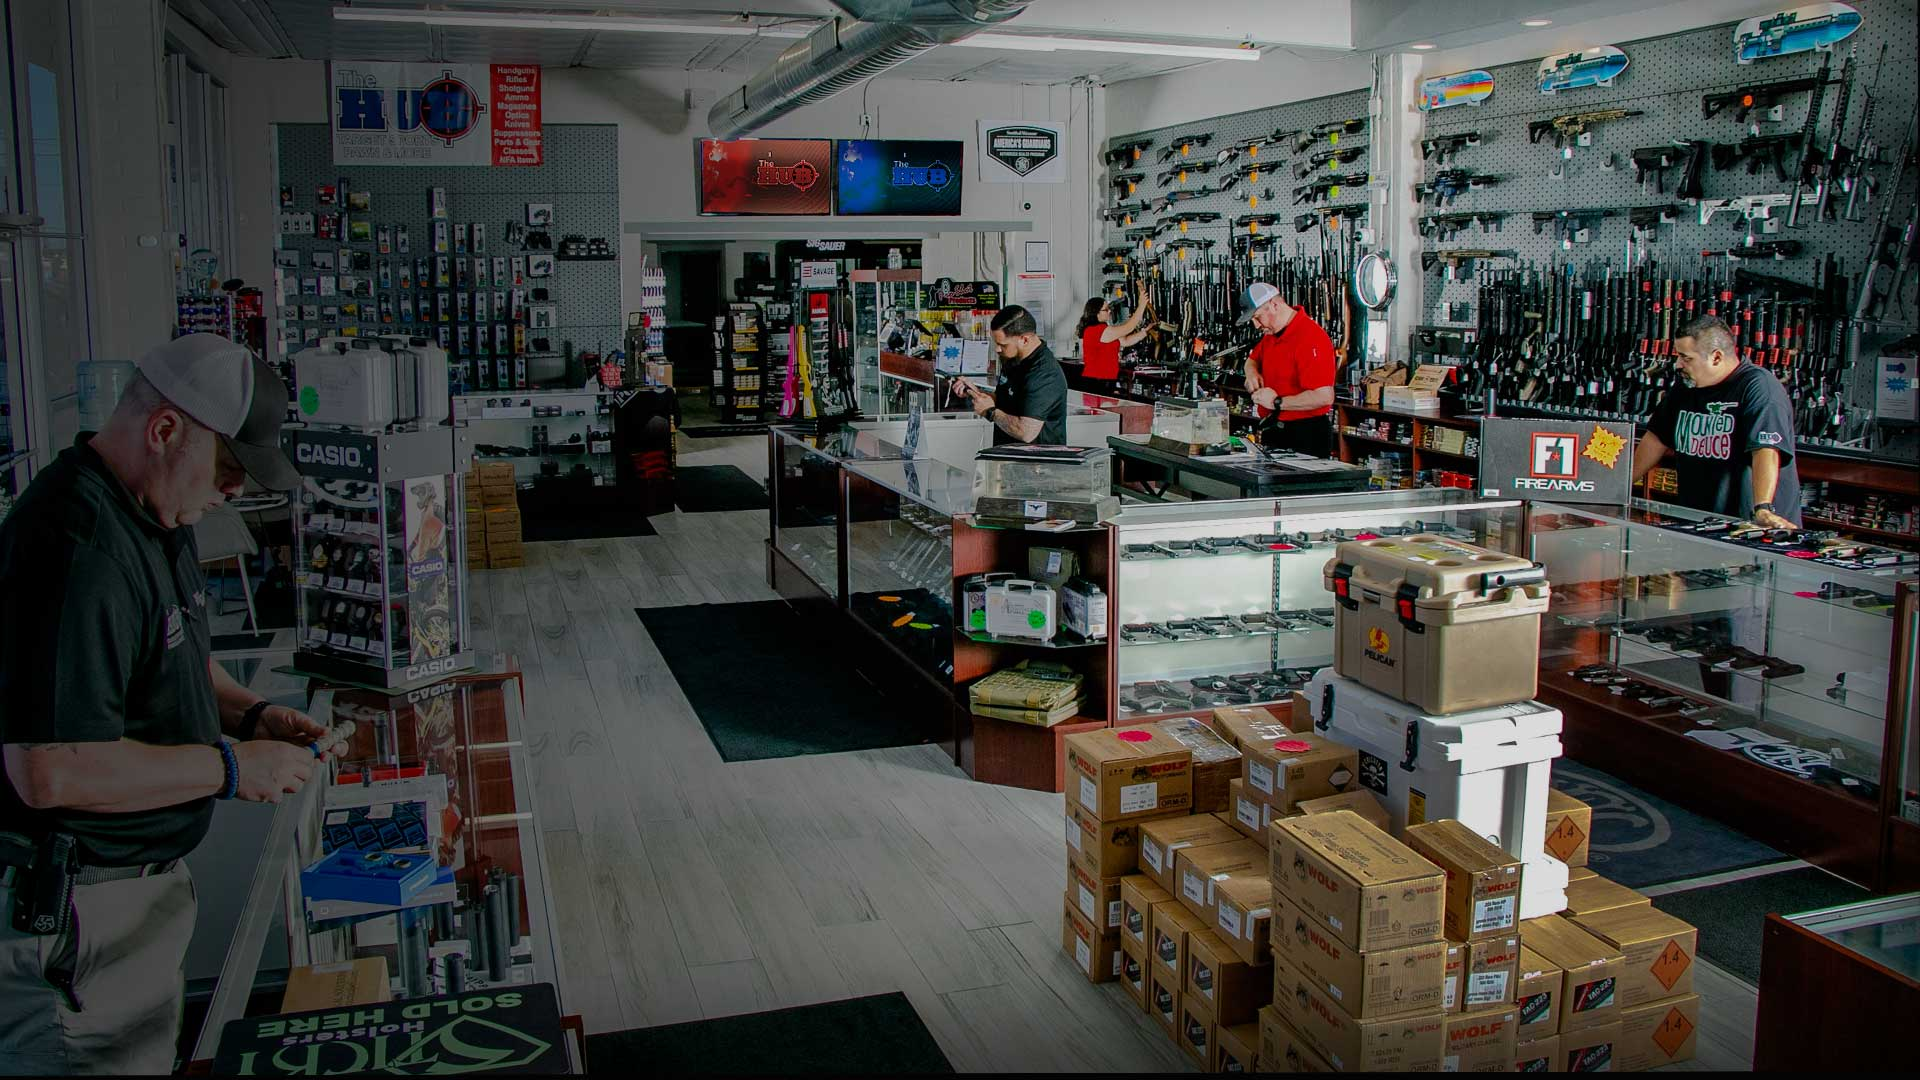 Our gun store's friendly and helpful associates assisting customers